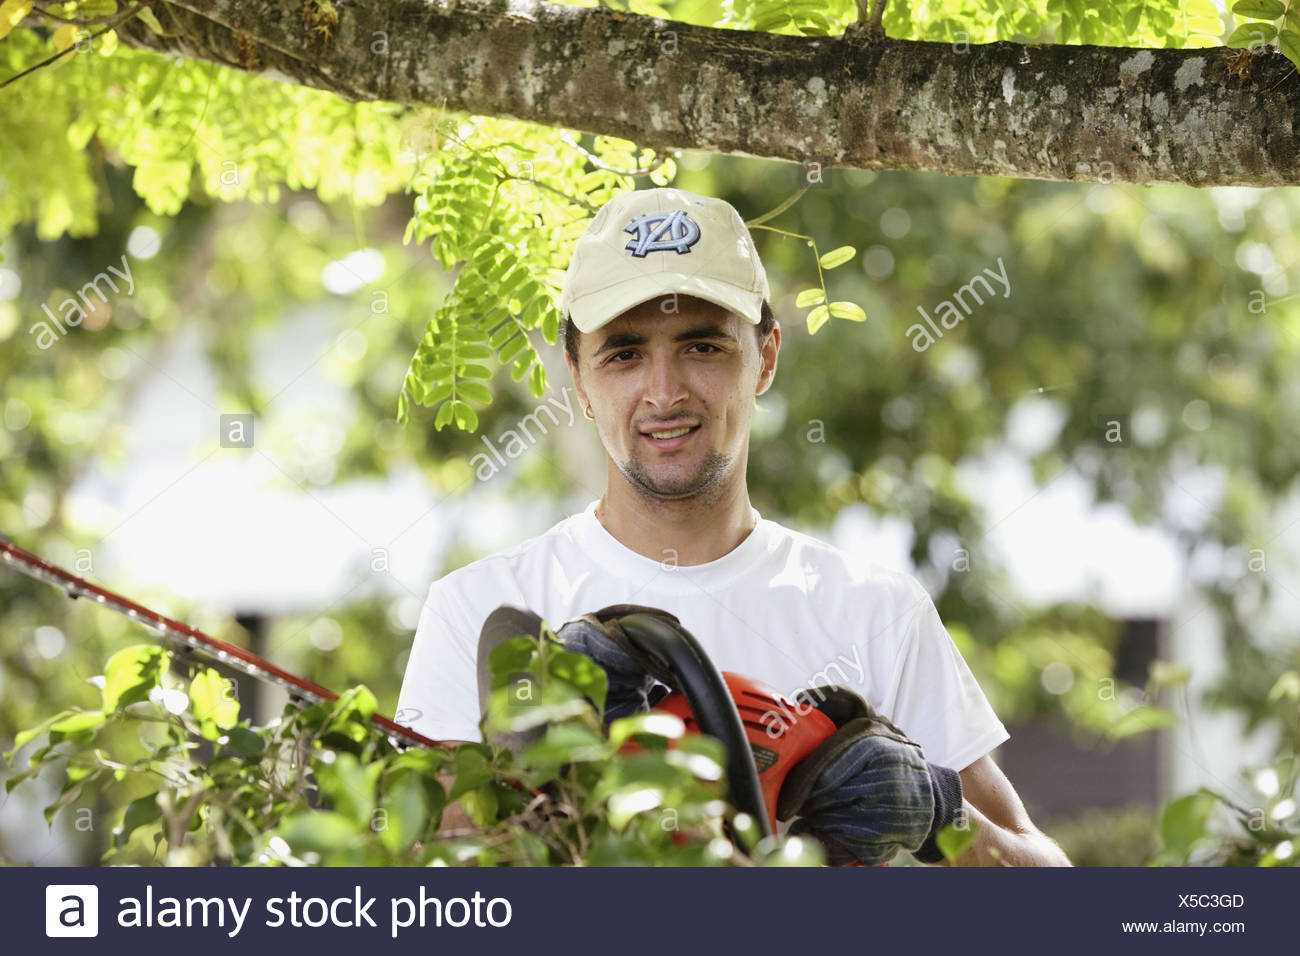 Man cutting a hedge with a trimmer - Stock Image